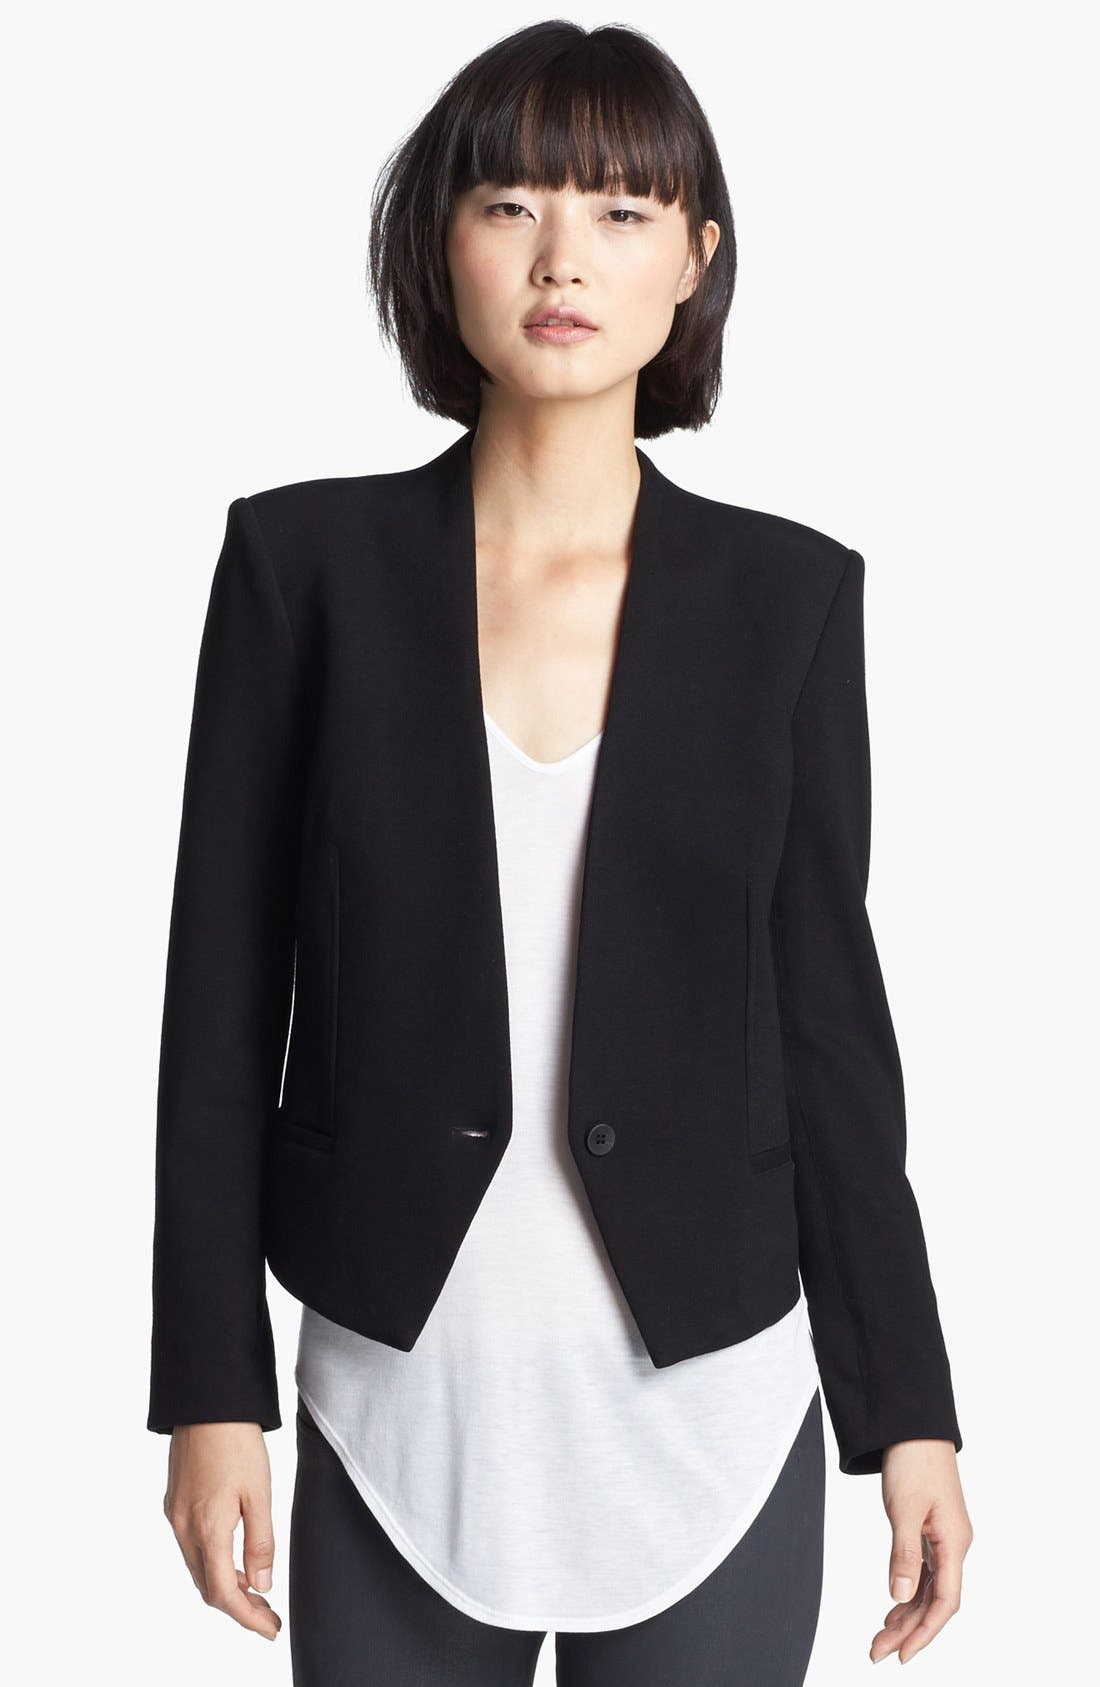 Alternate Image 1 Selected - HELMUT Helmut Lang 'Gala' Knit Tuxedo Blazer